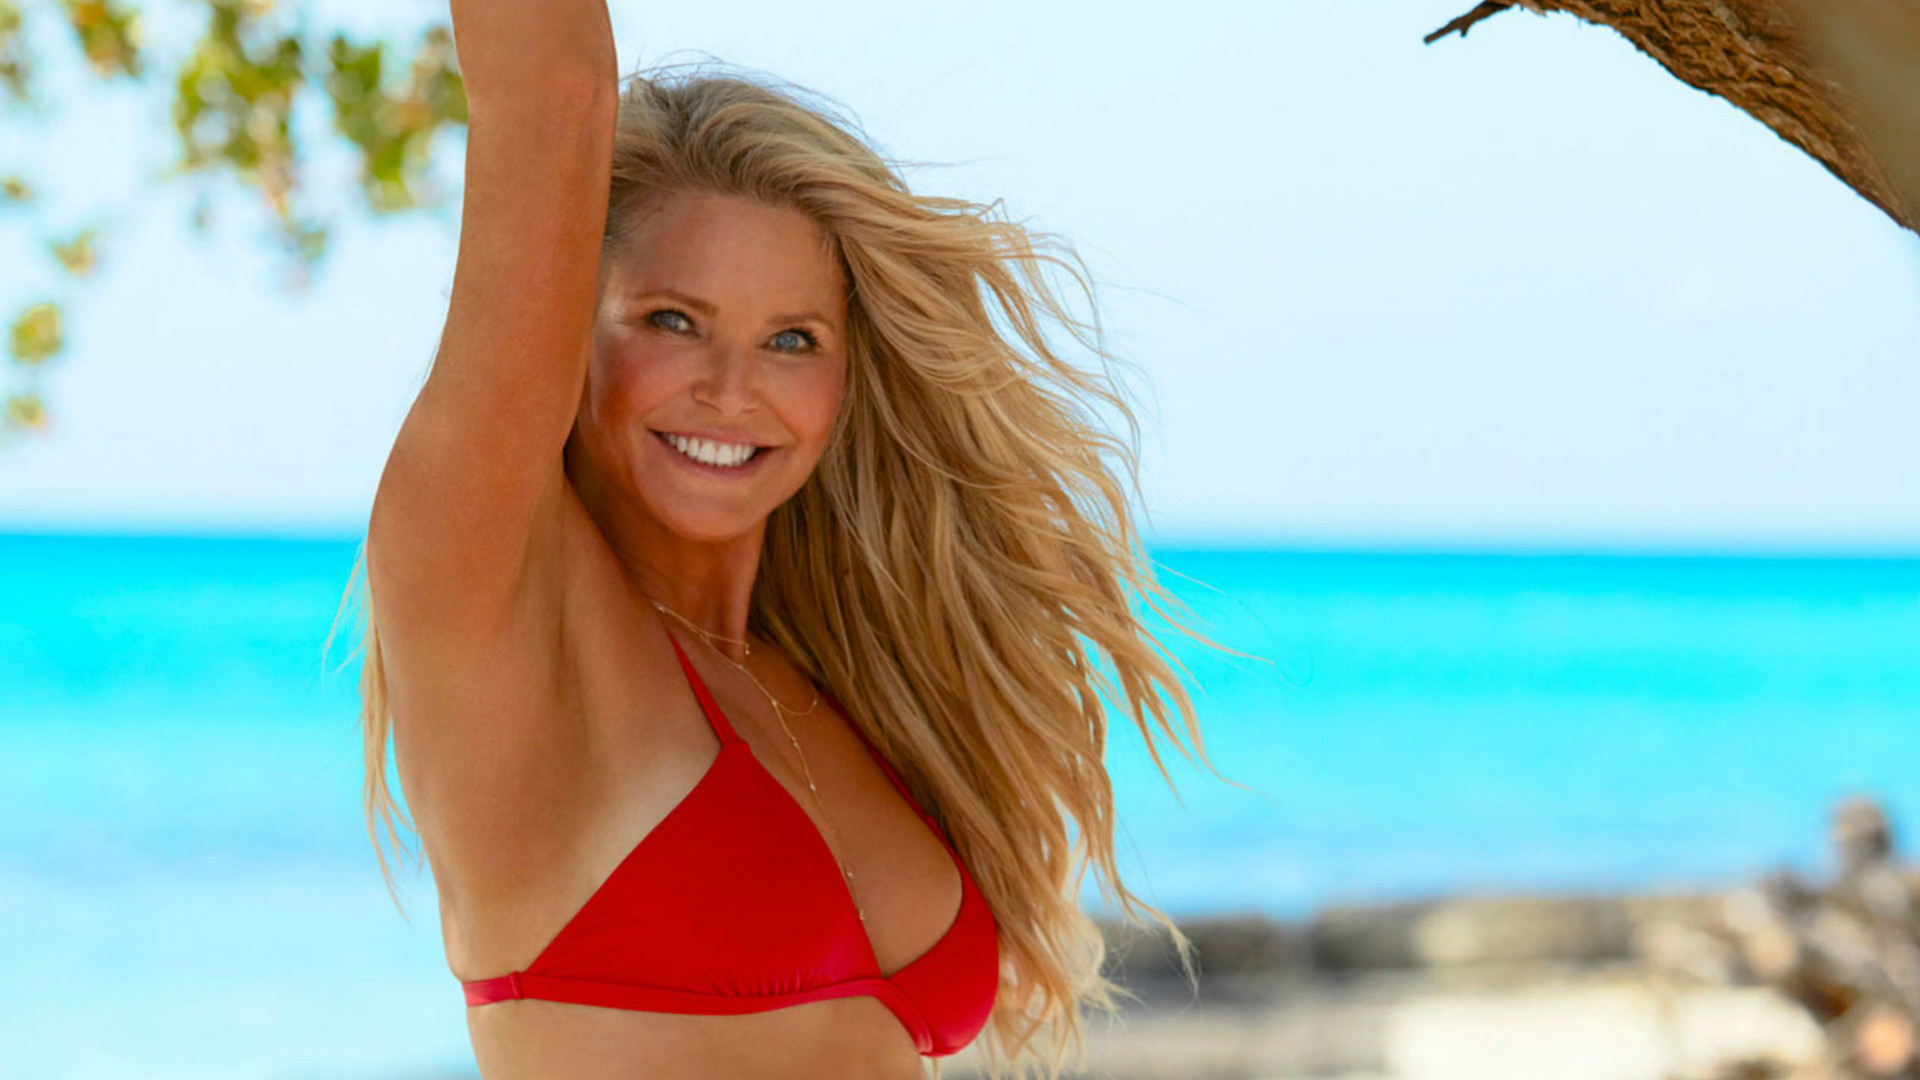 Christie Brinkley for Sports Illustrated.